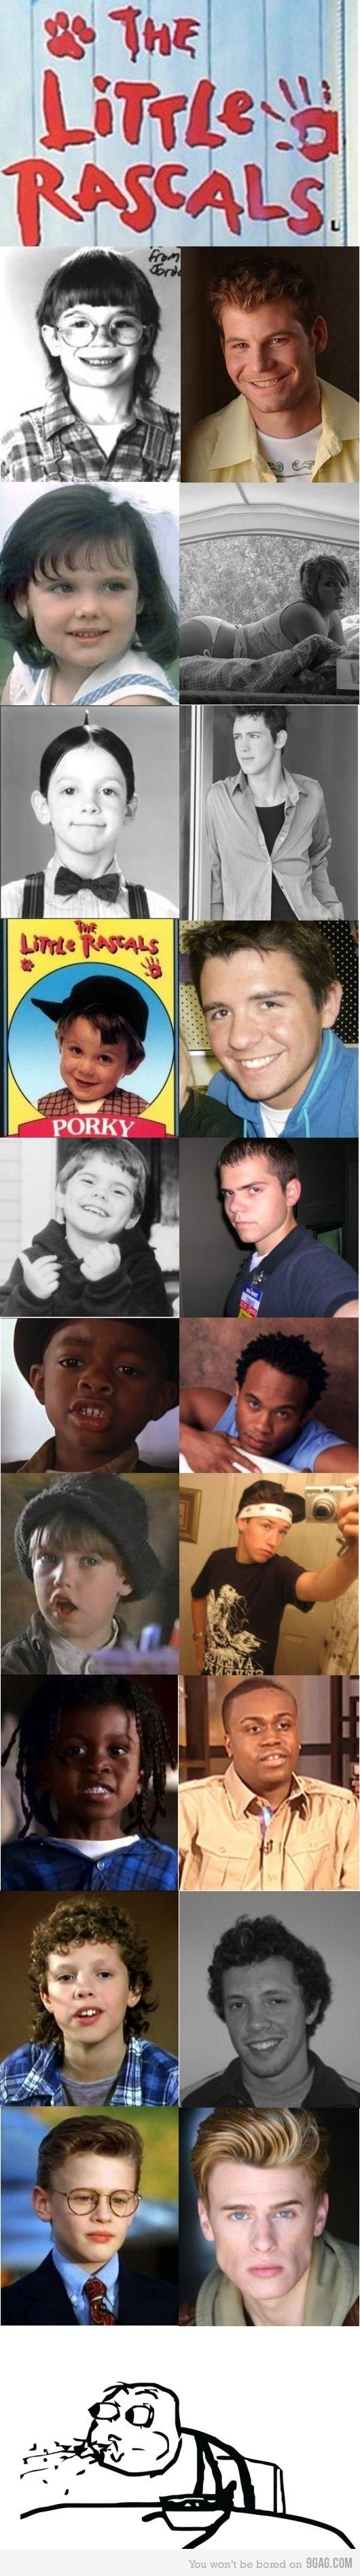 Literally laughed out loud in class...Little Rascals all grown up --HOW DID SPANKY END UP WORKING AT WALMART????